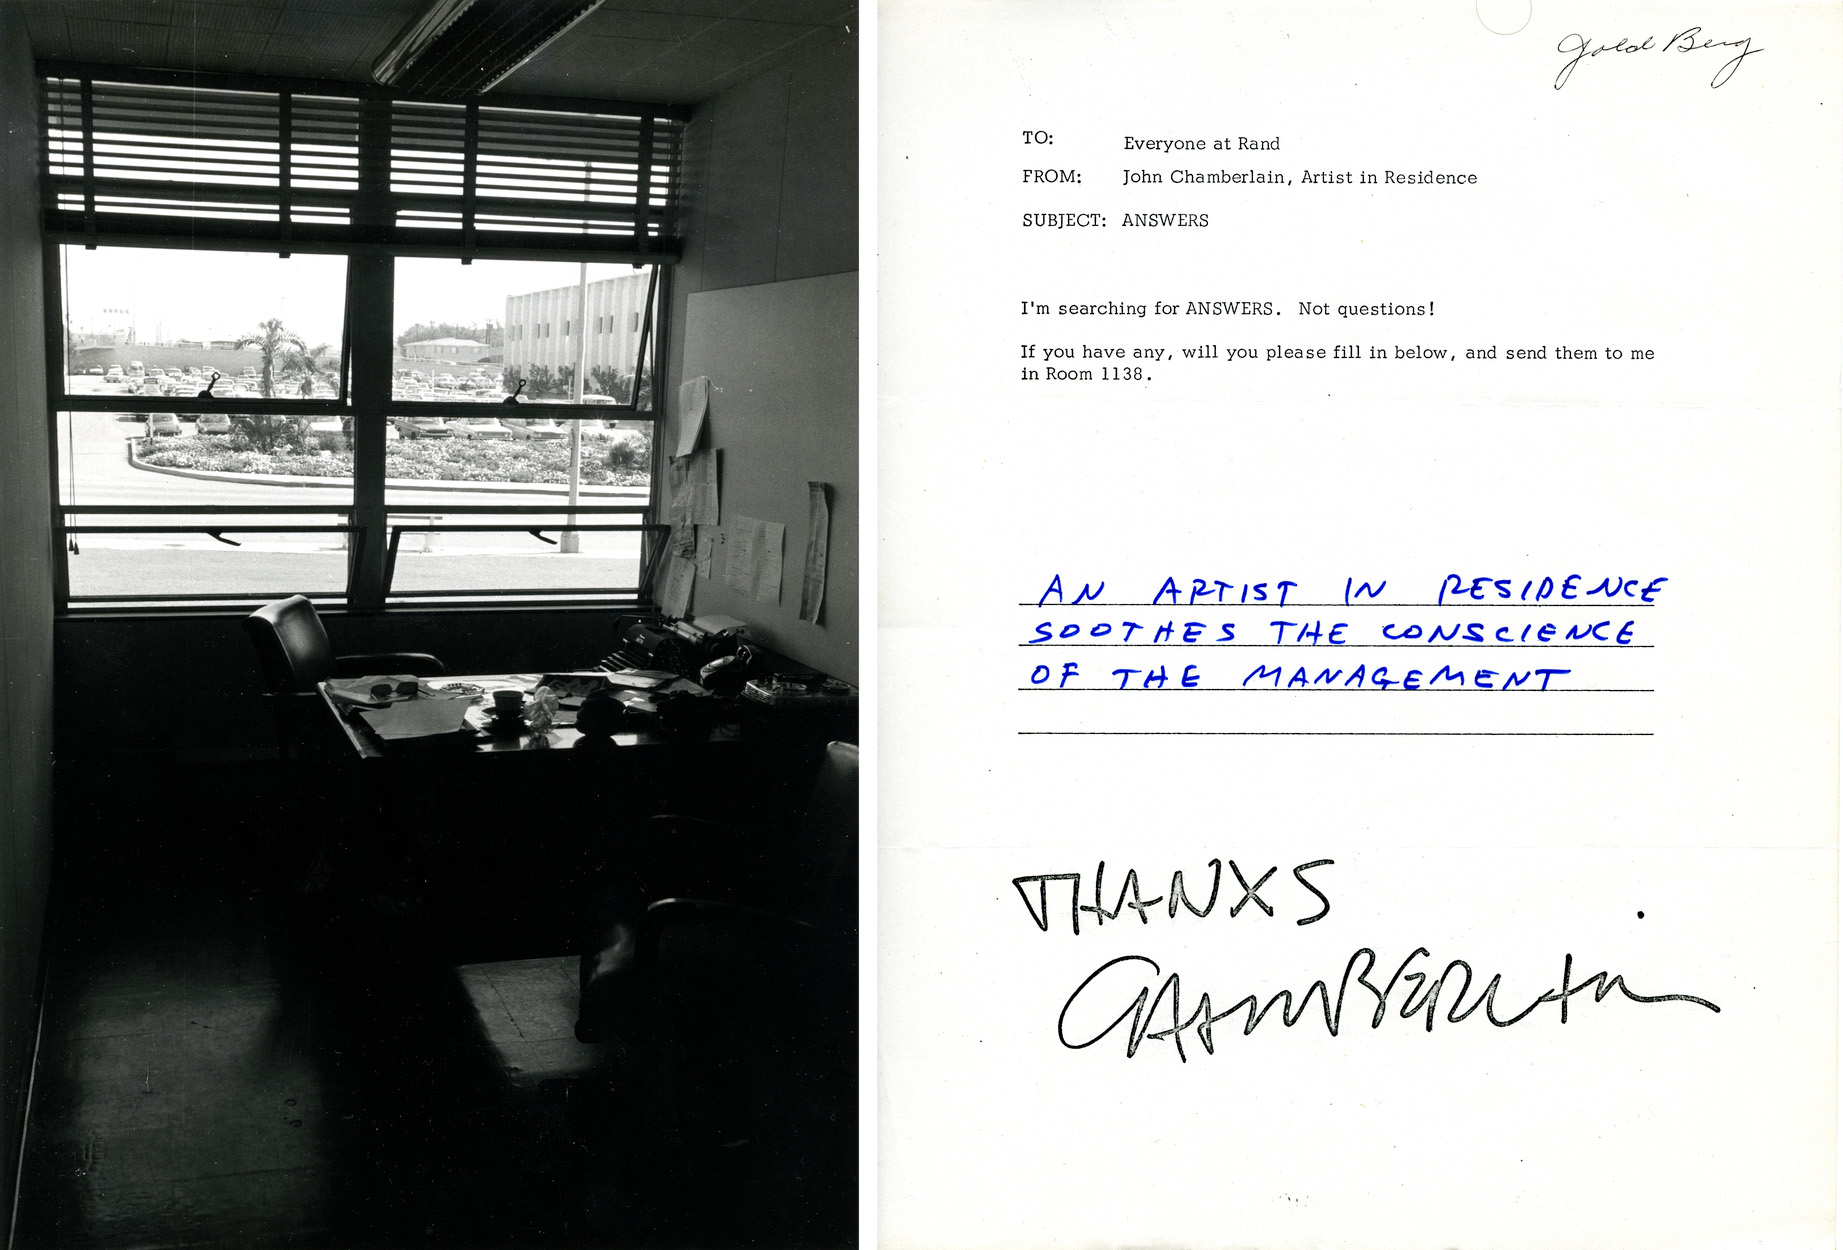 Left: Chamberlain's office at Rand. Photo © Barbara Crutchfield, courtesy LACMA archives. Right: A questionnaire seeking answers sent to the employees of Rand Corporation by Chamberlain as part of his Art and Technology piece, <i>Rand Piece</i>, 1970. Copyright: © 2015 John Chamberlain / Artists Rights Society (ARS), New York. Photo © Museum Associates/ LACMA